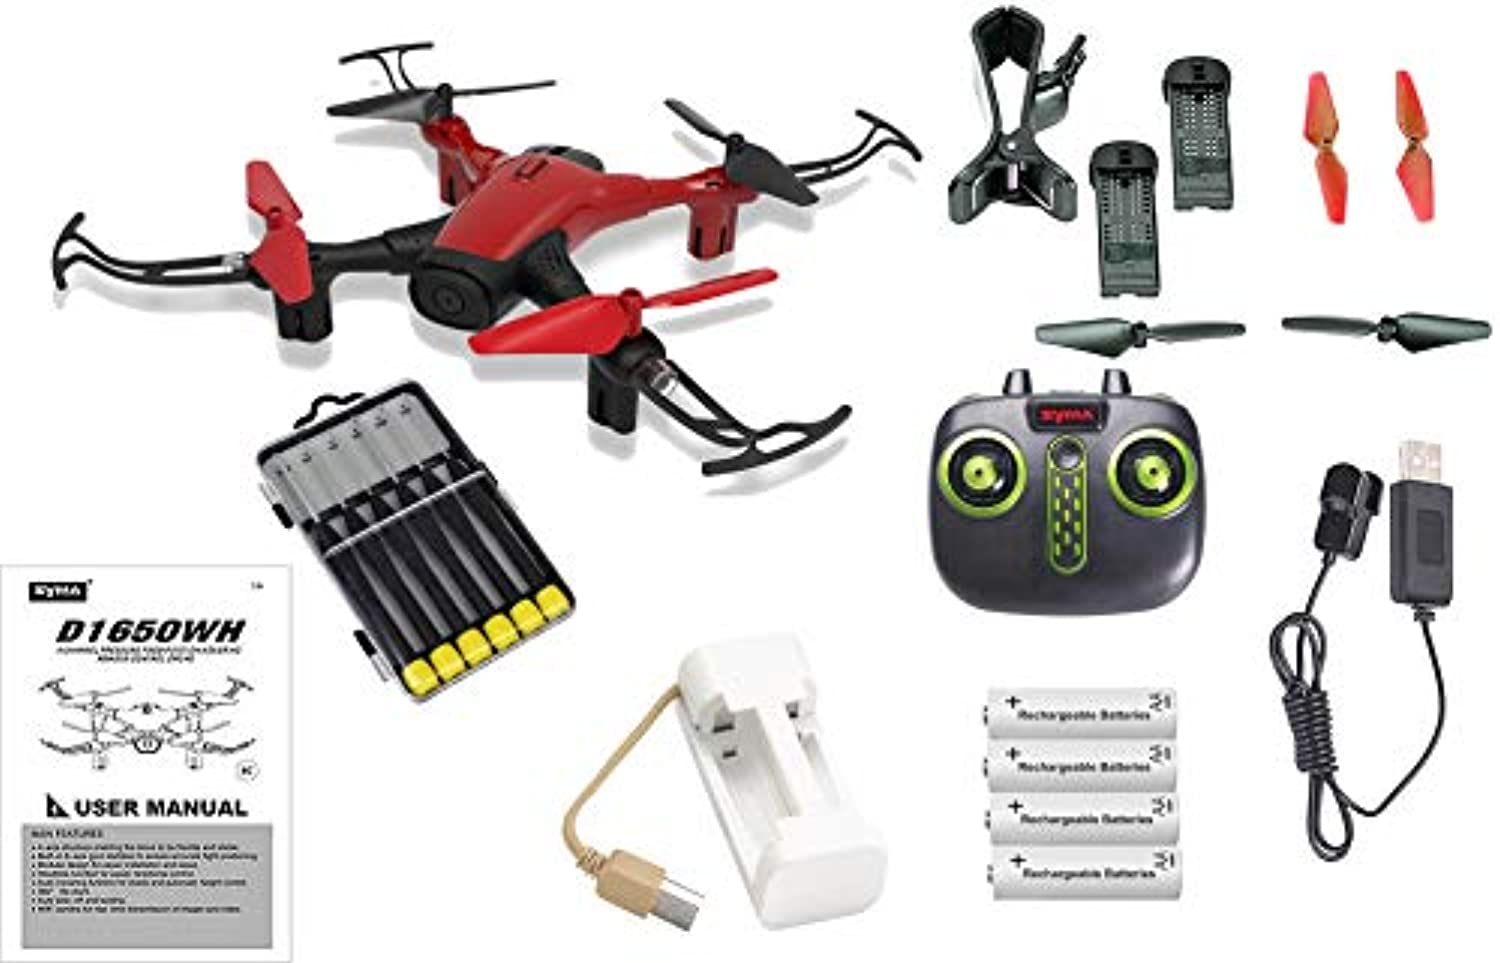 Red Sky Phantom WiFi FPV Drone with HD Camera Live Feed 2.4GHz 4CH Bundle with Must Have Accessories - 23pcs Set